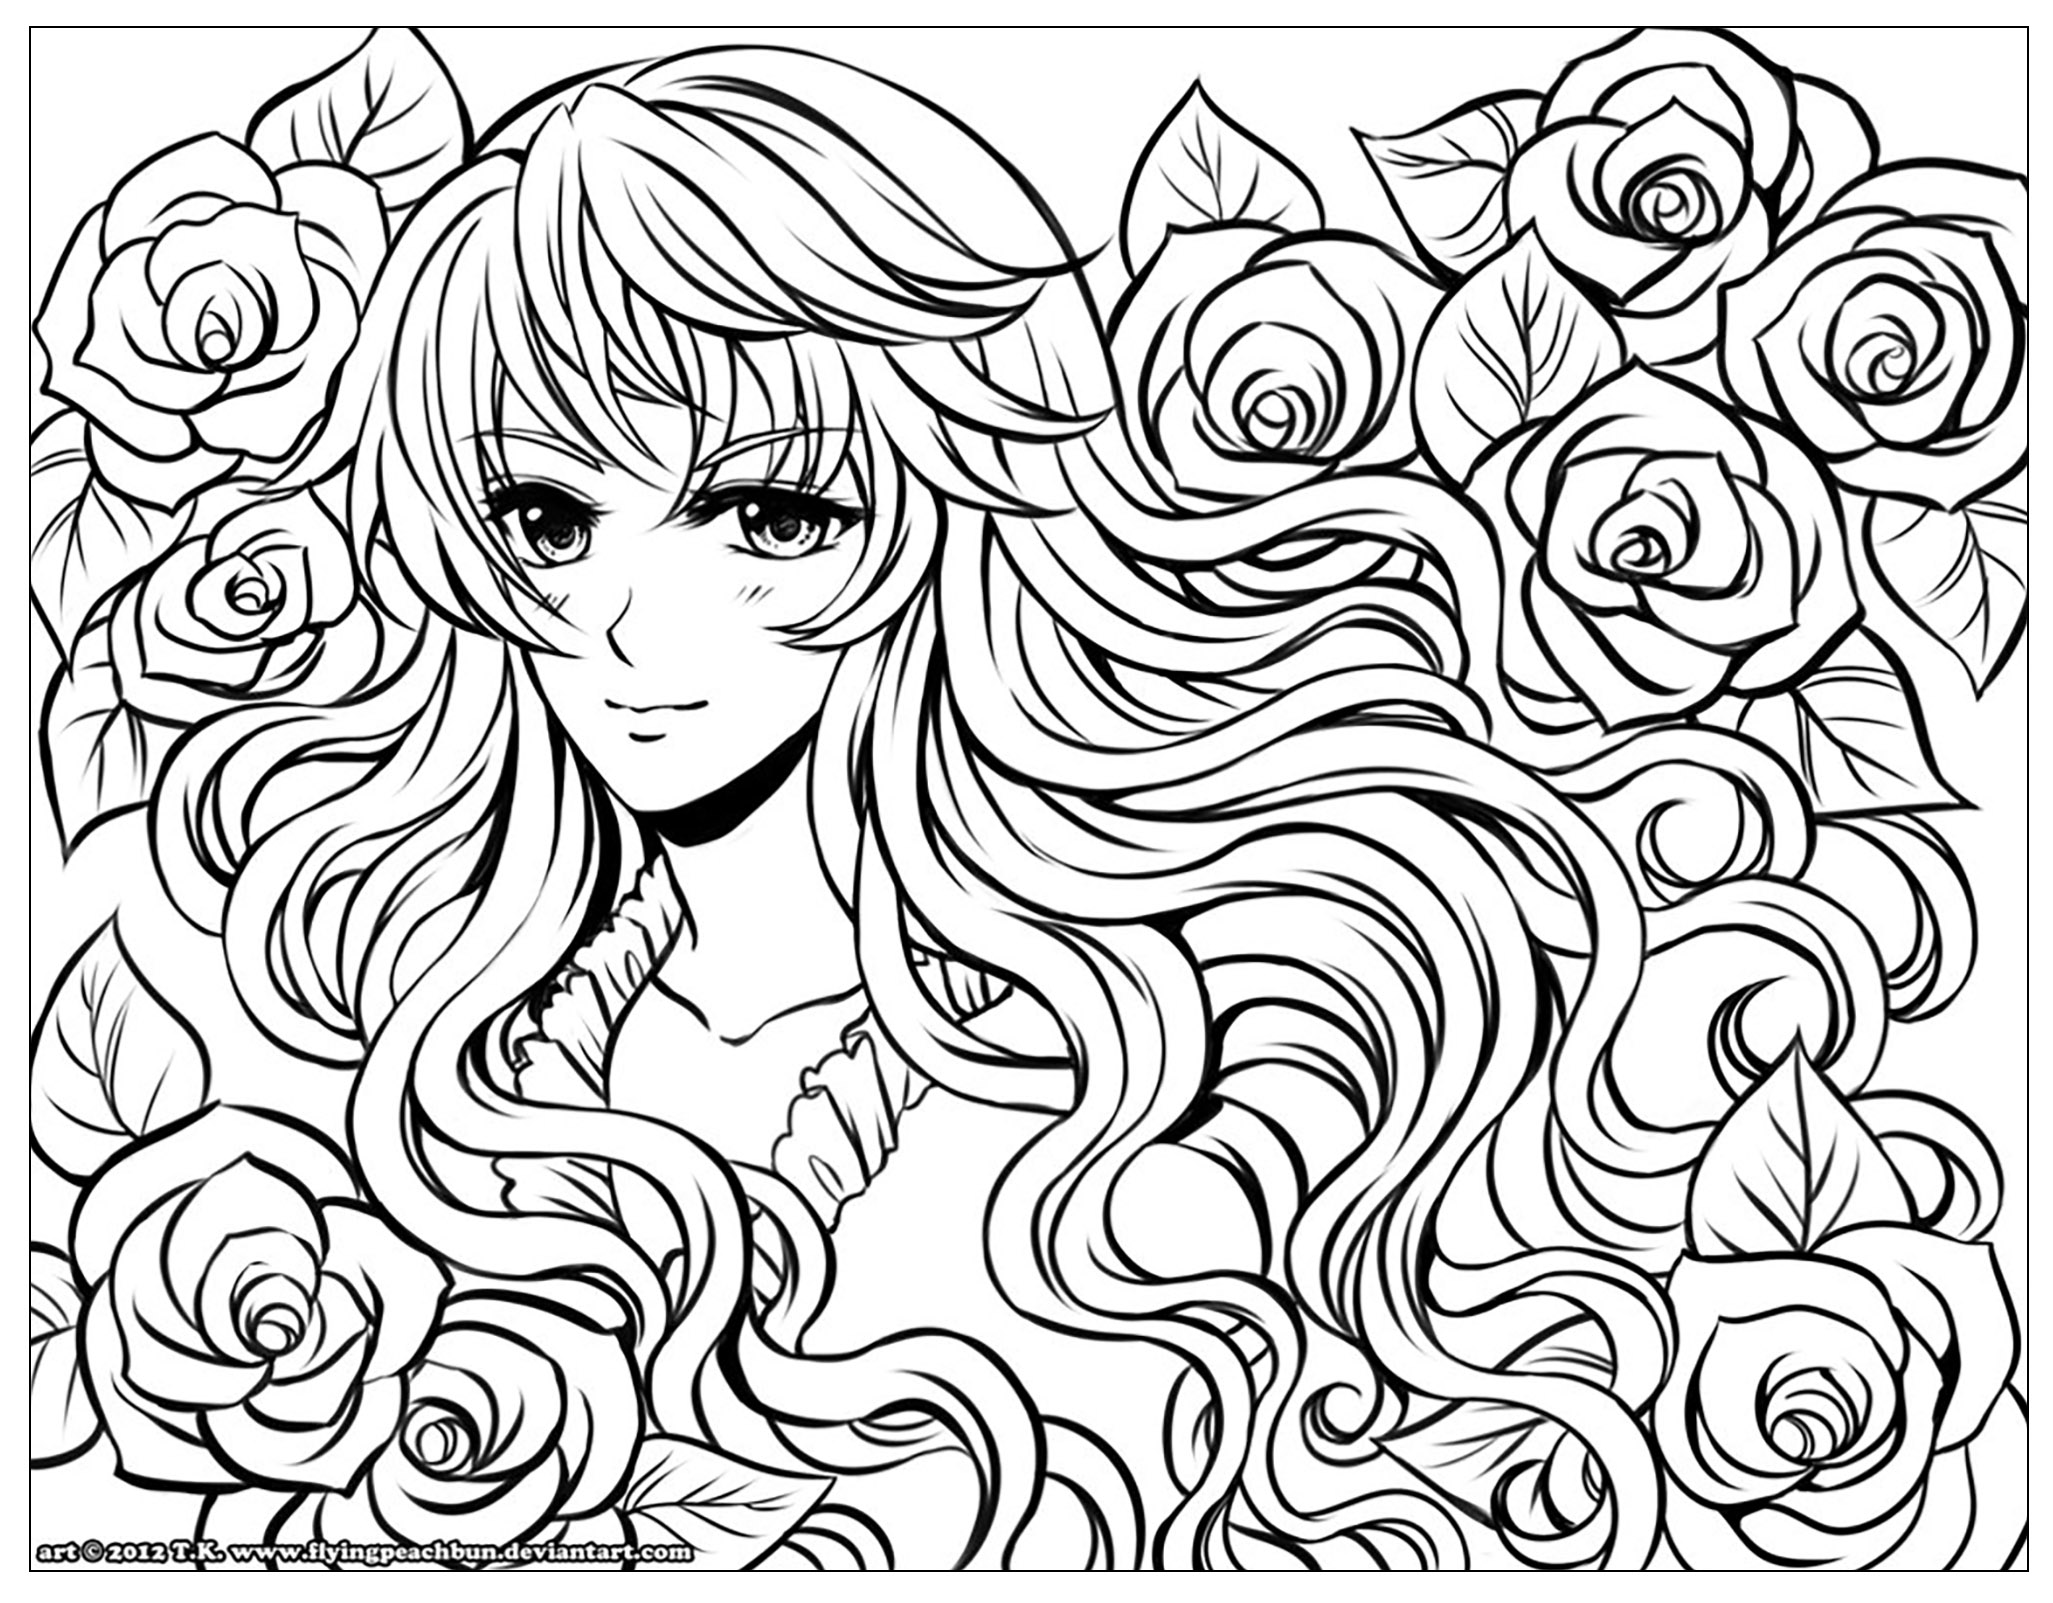 Manga Girl With Flowers Manga Anime Adult Coloring Pages